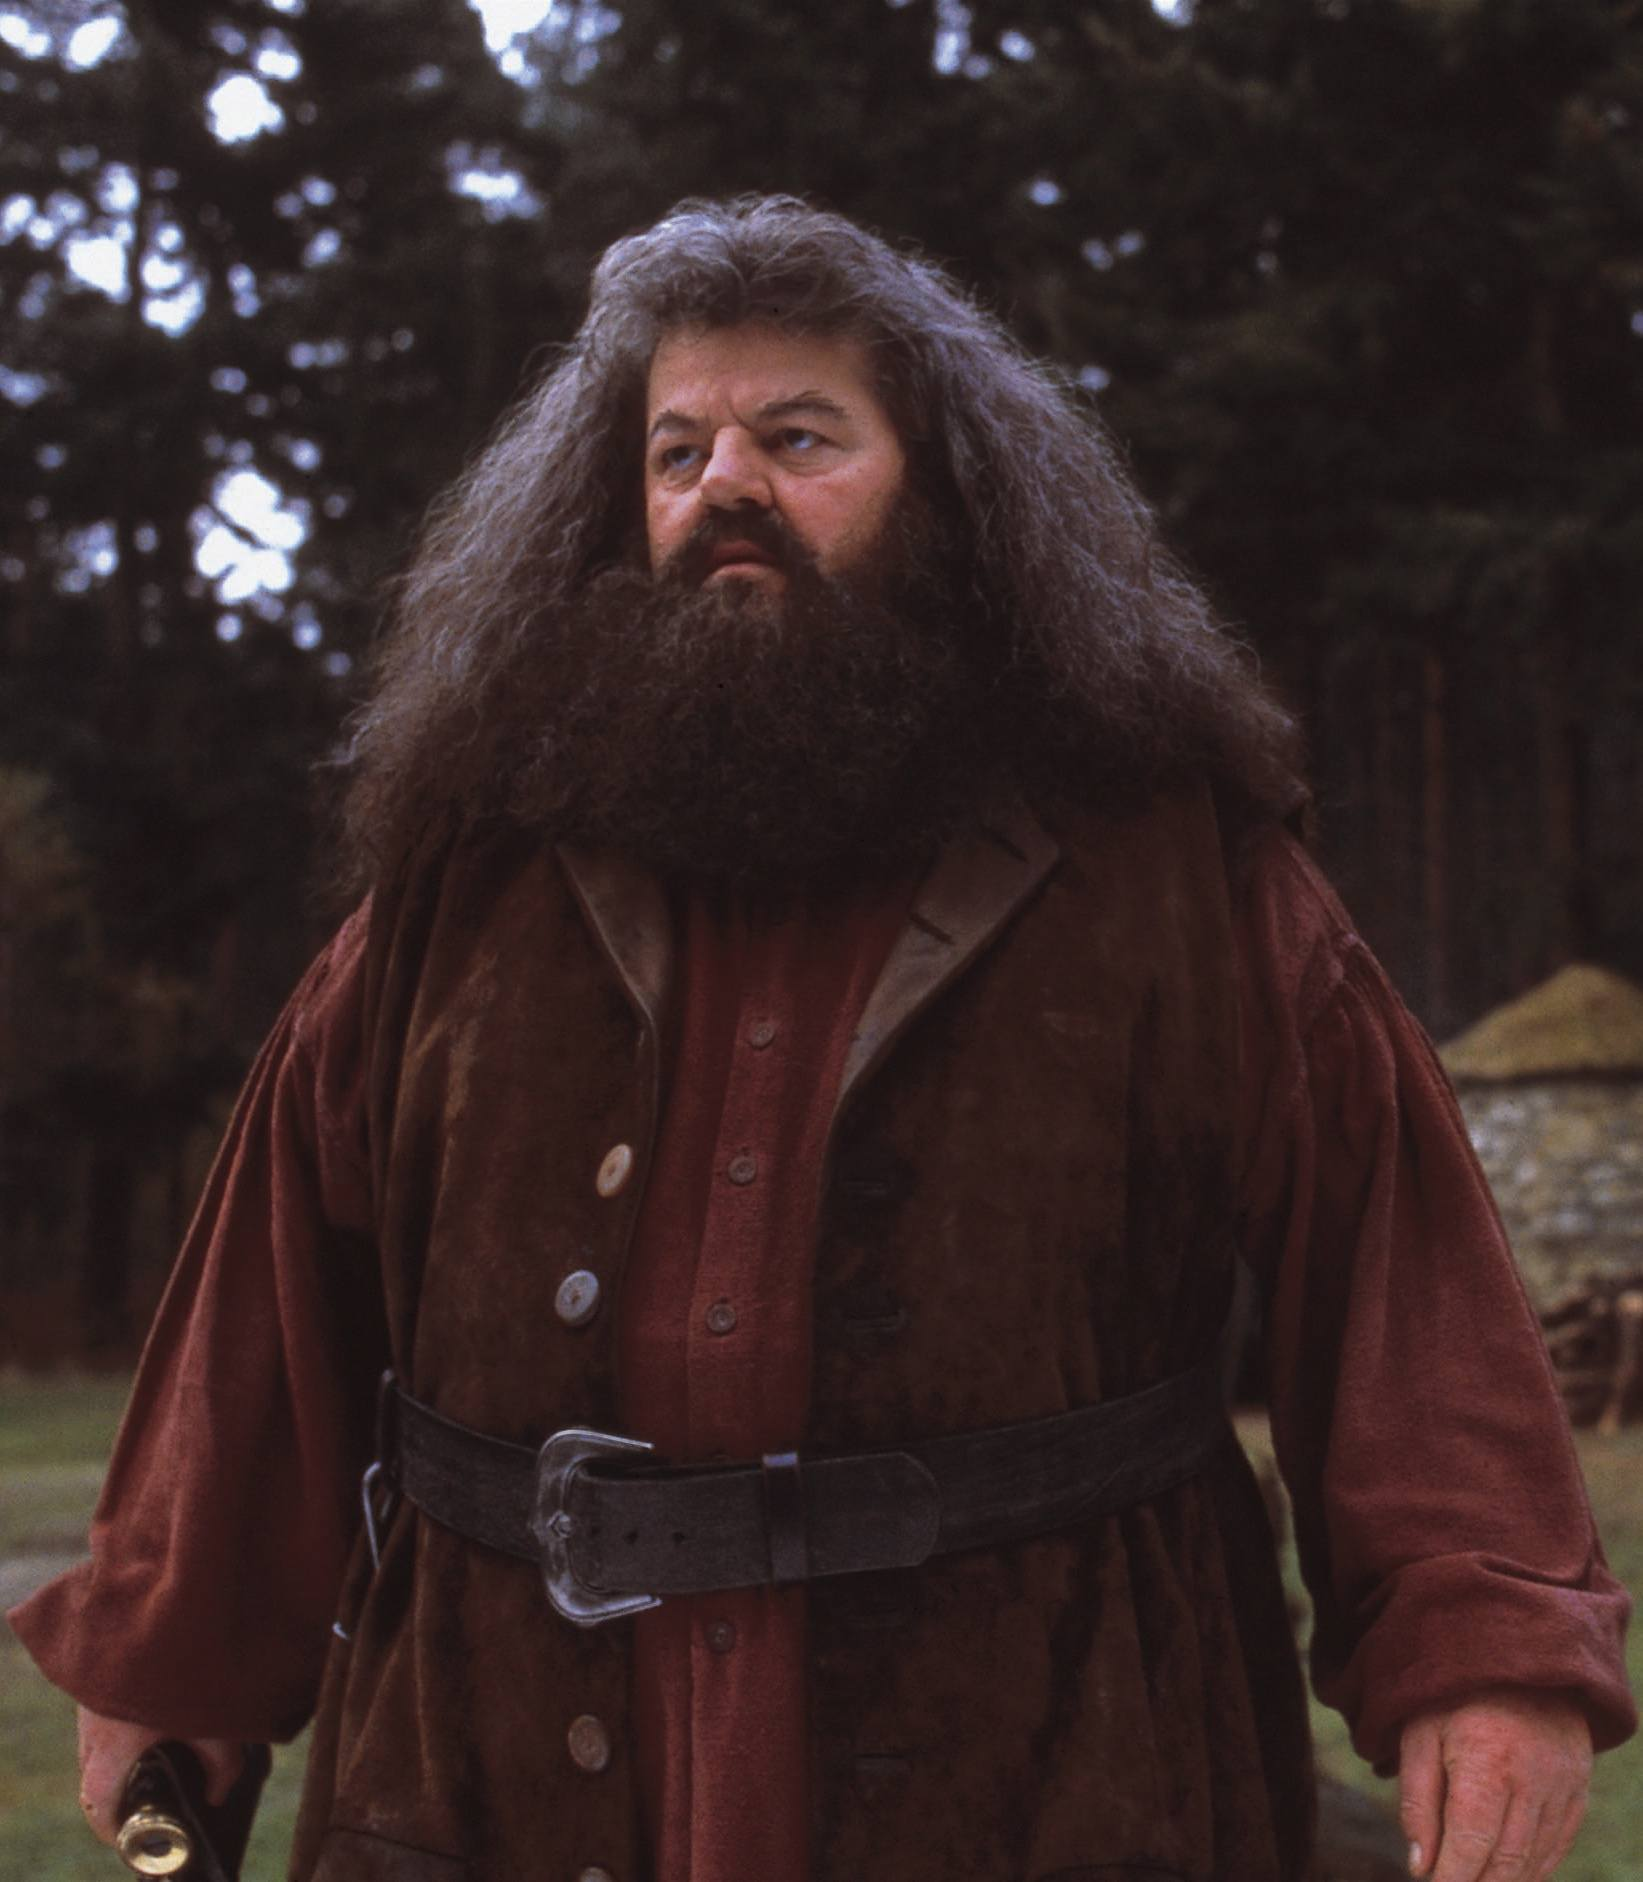 Robbie Coltrane as Rubeus Hagrid in the Harry Potter series